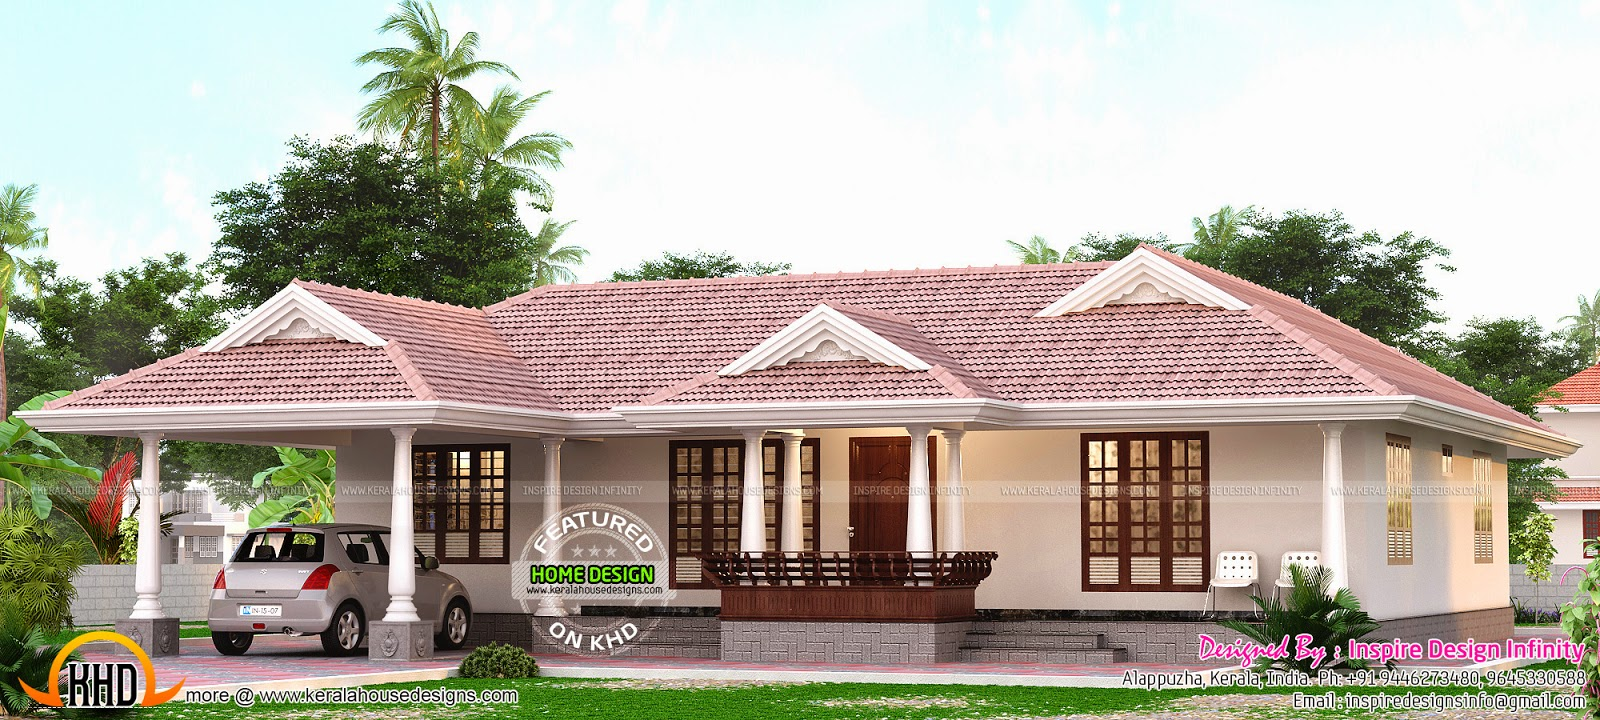 Kerala model single storied home kerala home design and for Colonial style home design in kerala